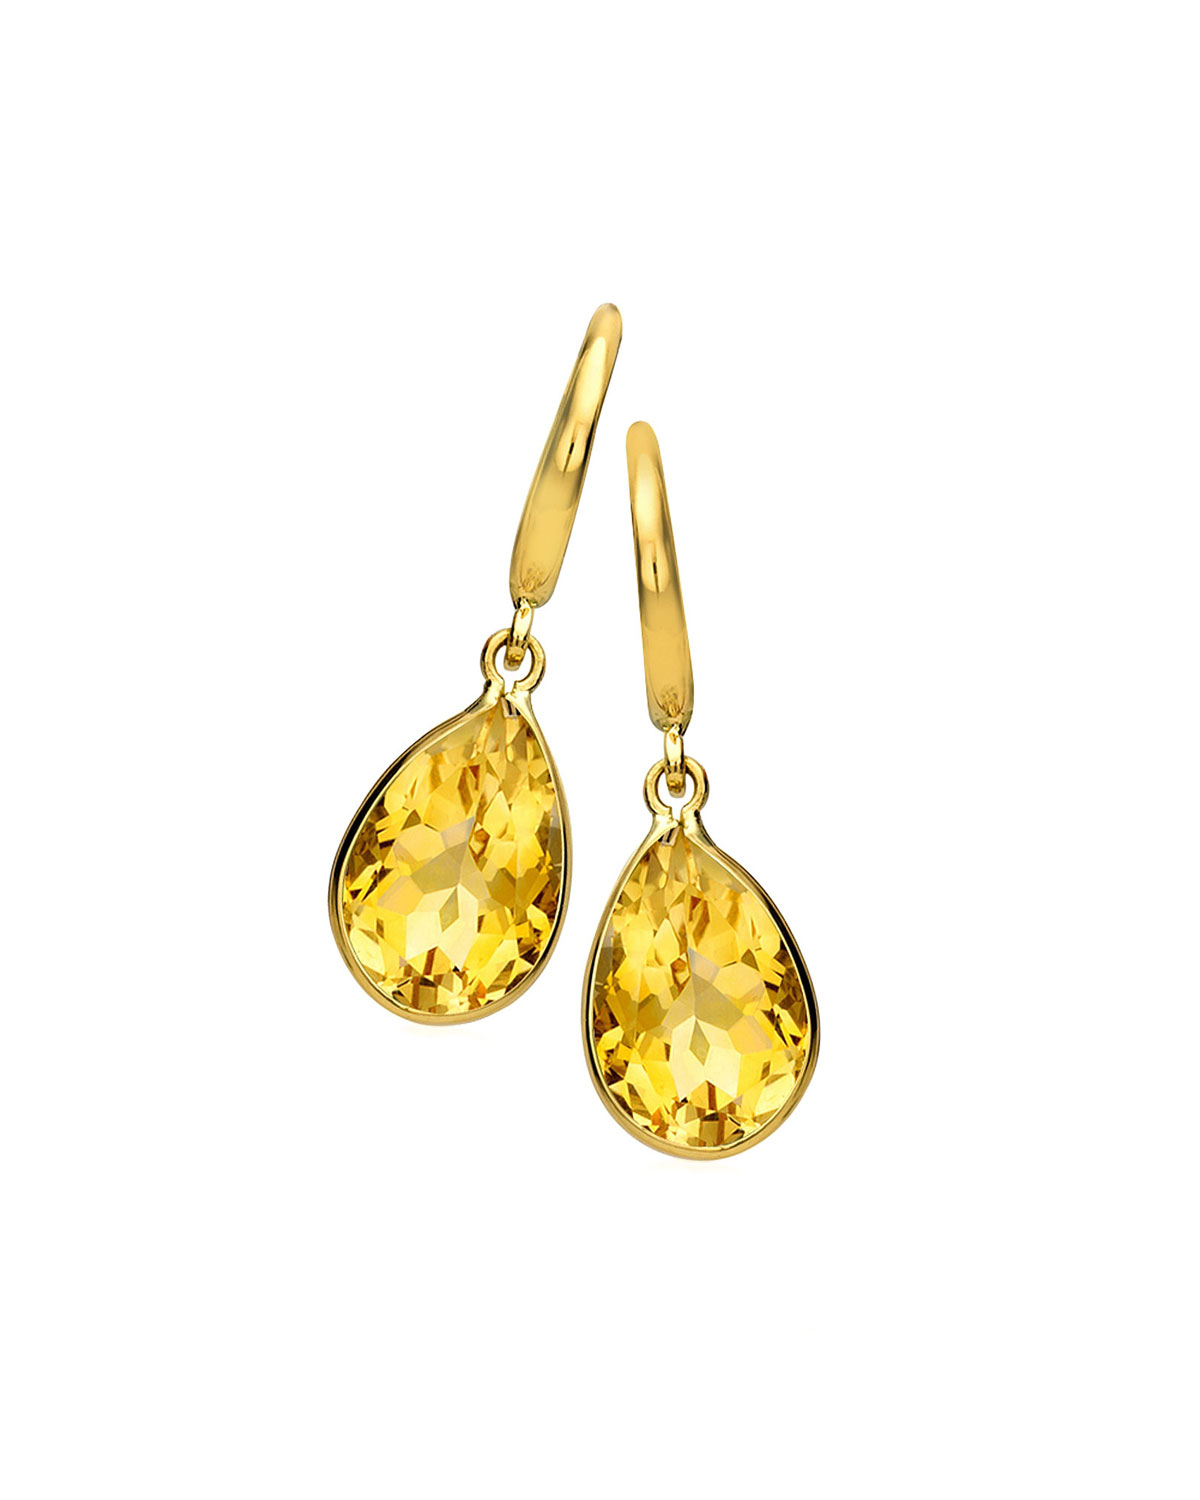 shop august itaglio side designers intaglio kiss jewelry gabriella with citrine earrings bee